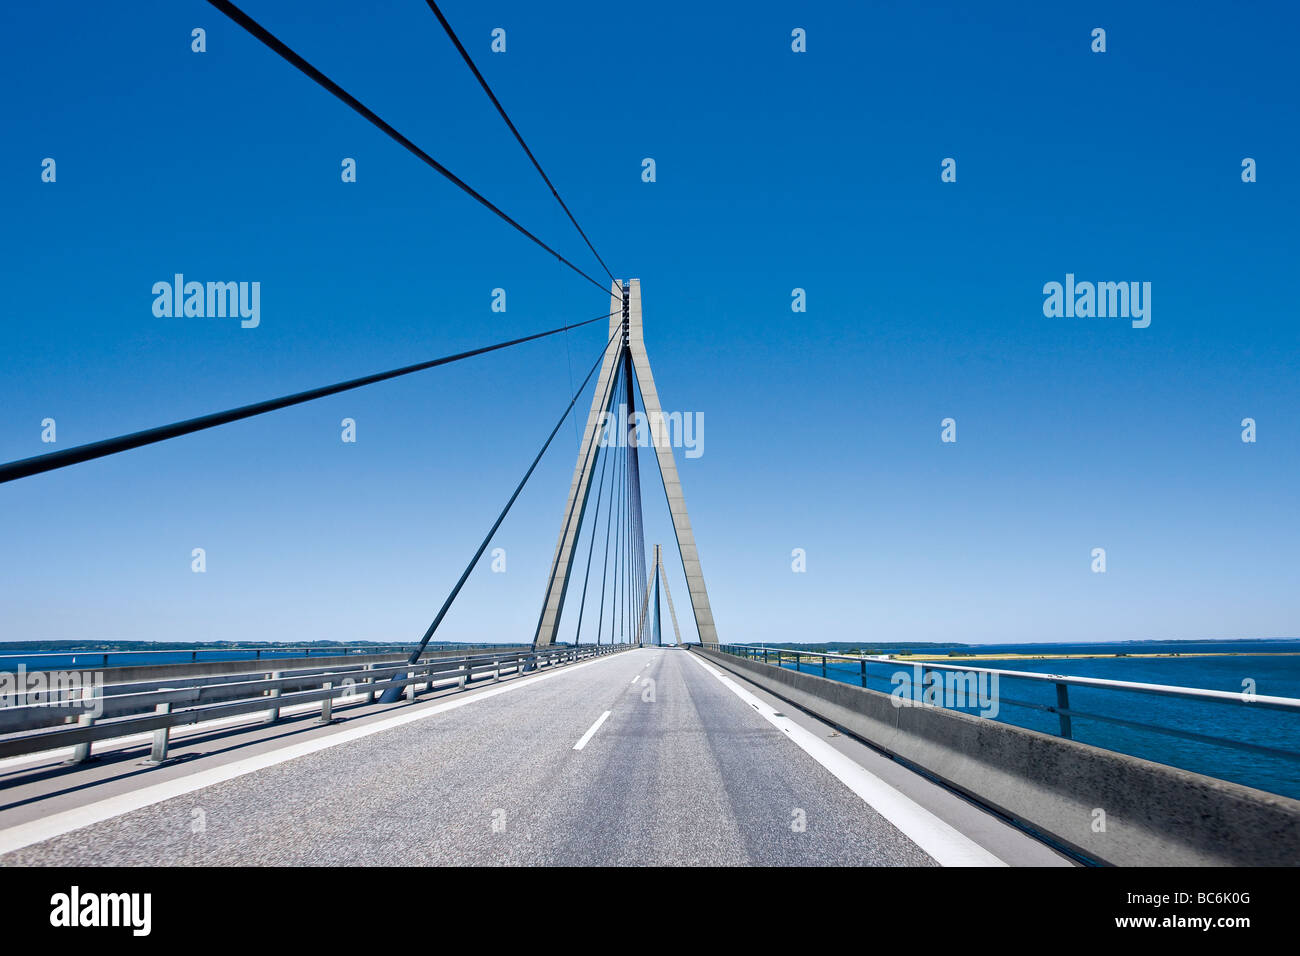 Crossing the Faro Bridge between Zealand and Falster in Denmark - Stock Image